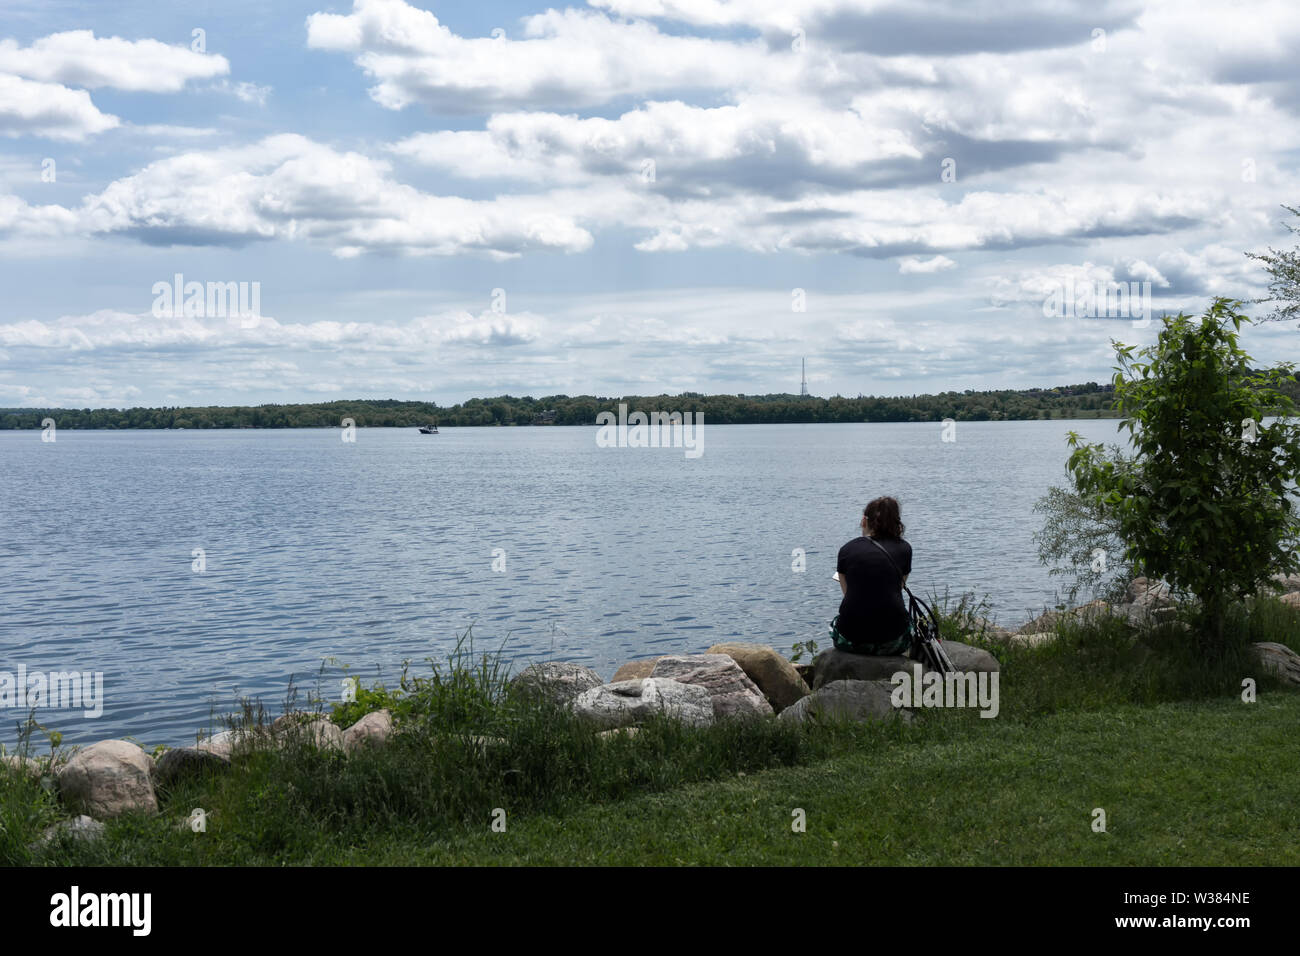 Canada Ontario Barrie at June 2019, Lunch break in the park, a woman is reading - Stock Image